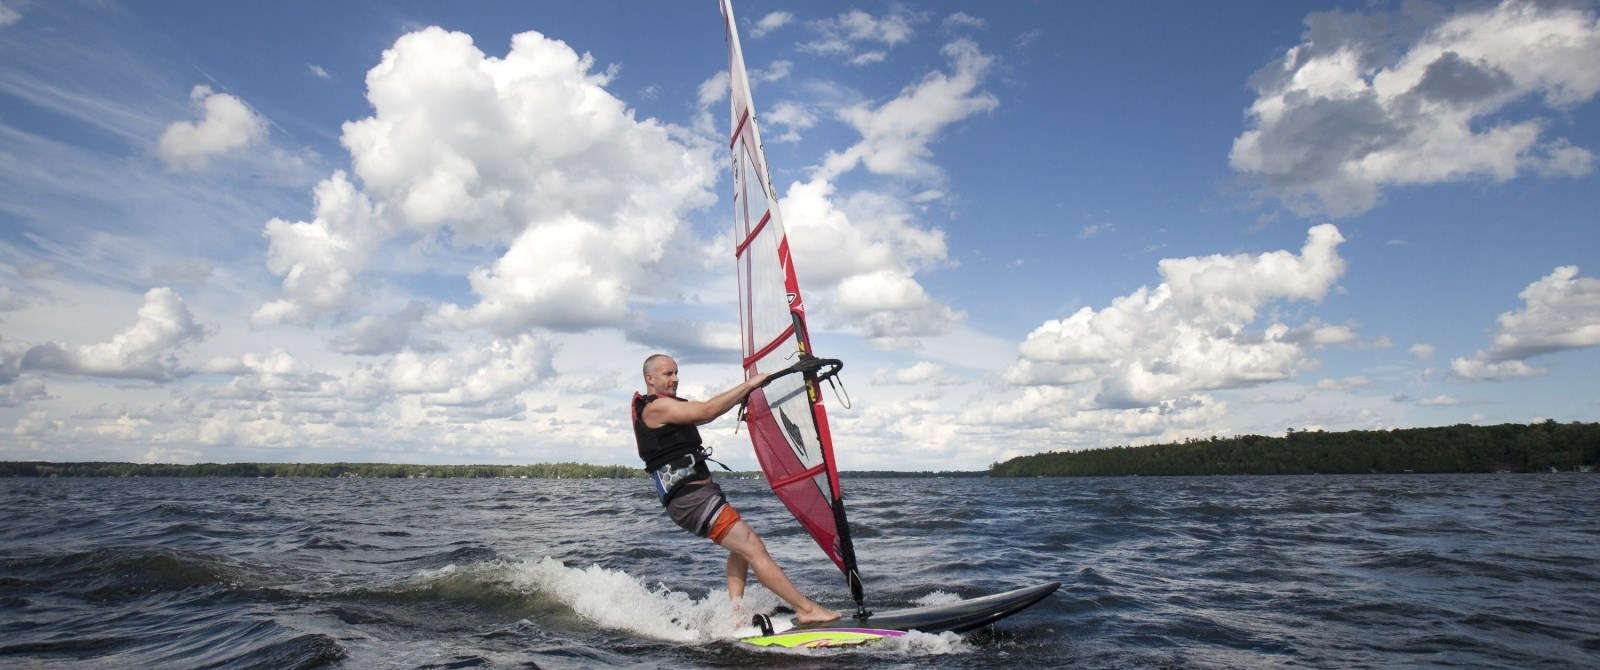 man para sailing on lake